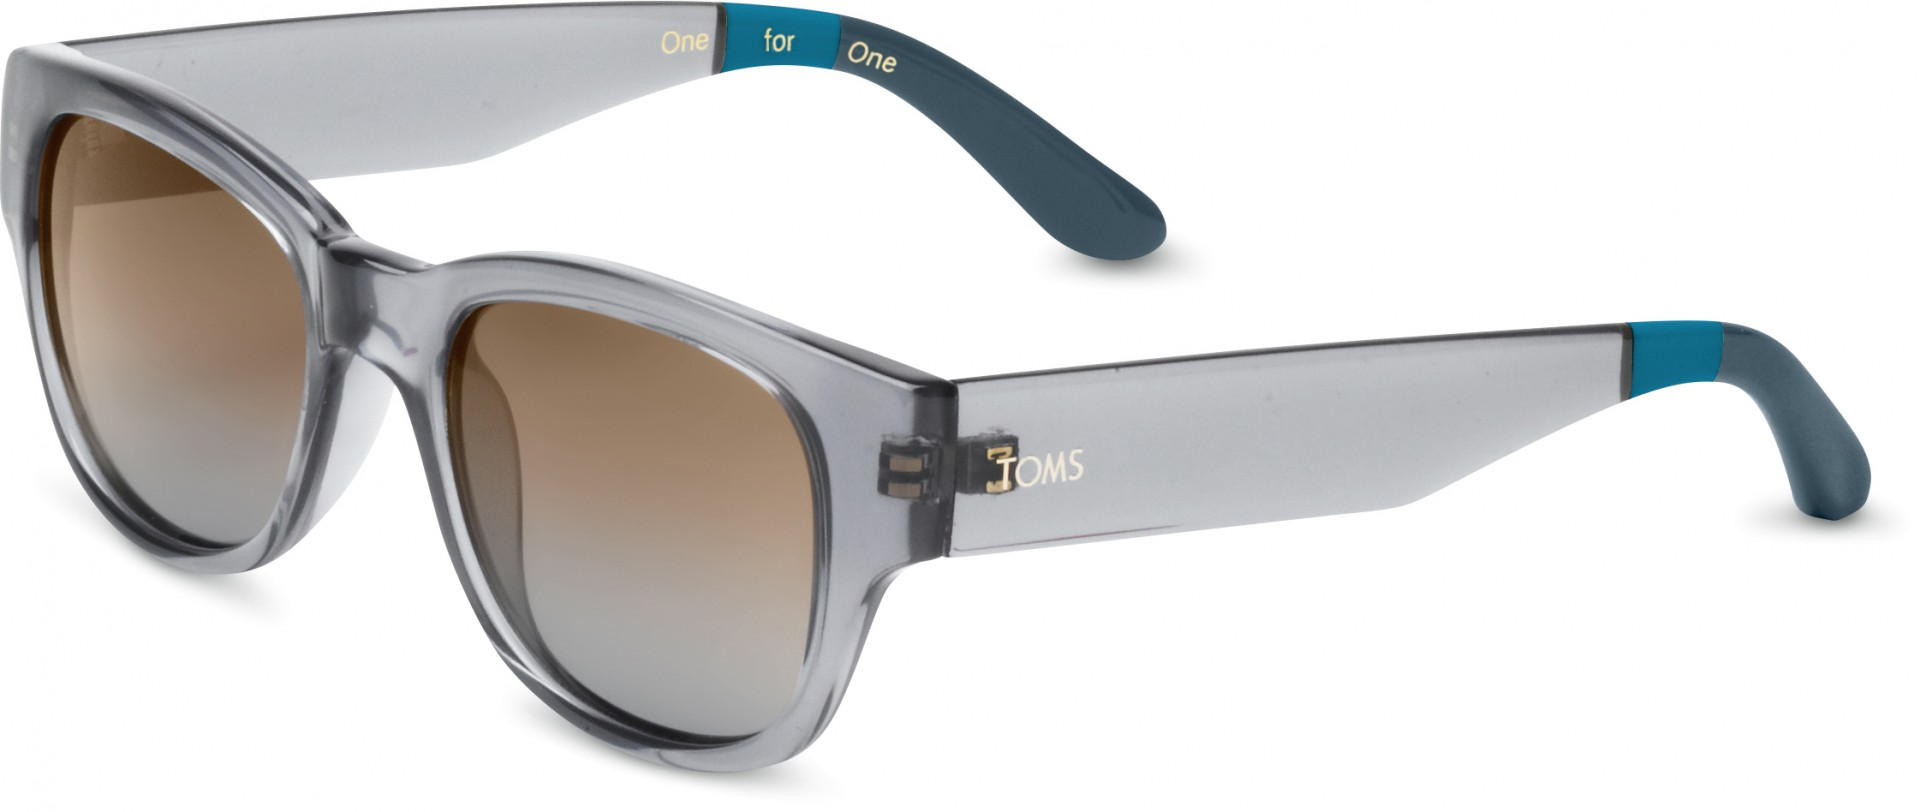 Gigi shades, £XX, Toms. www.toms.co.uk